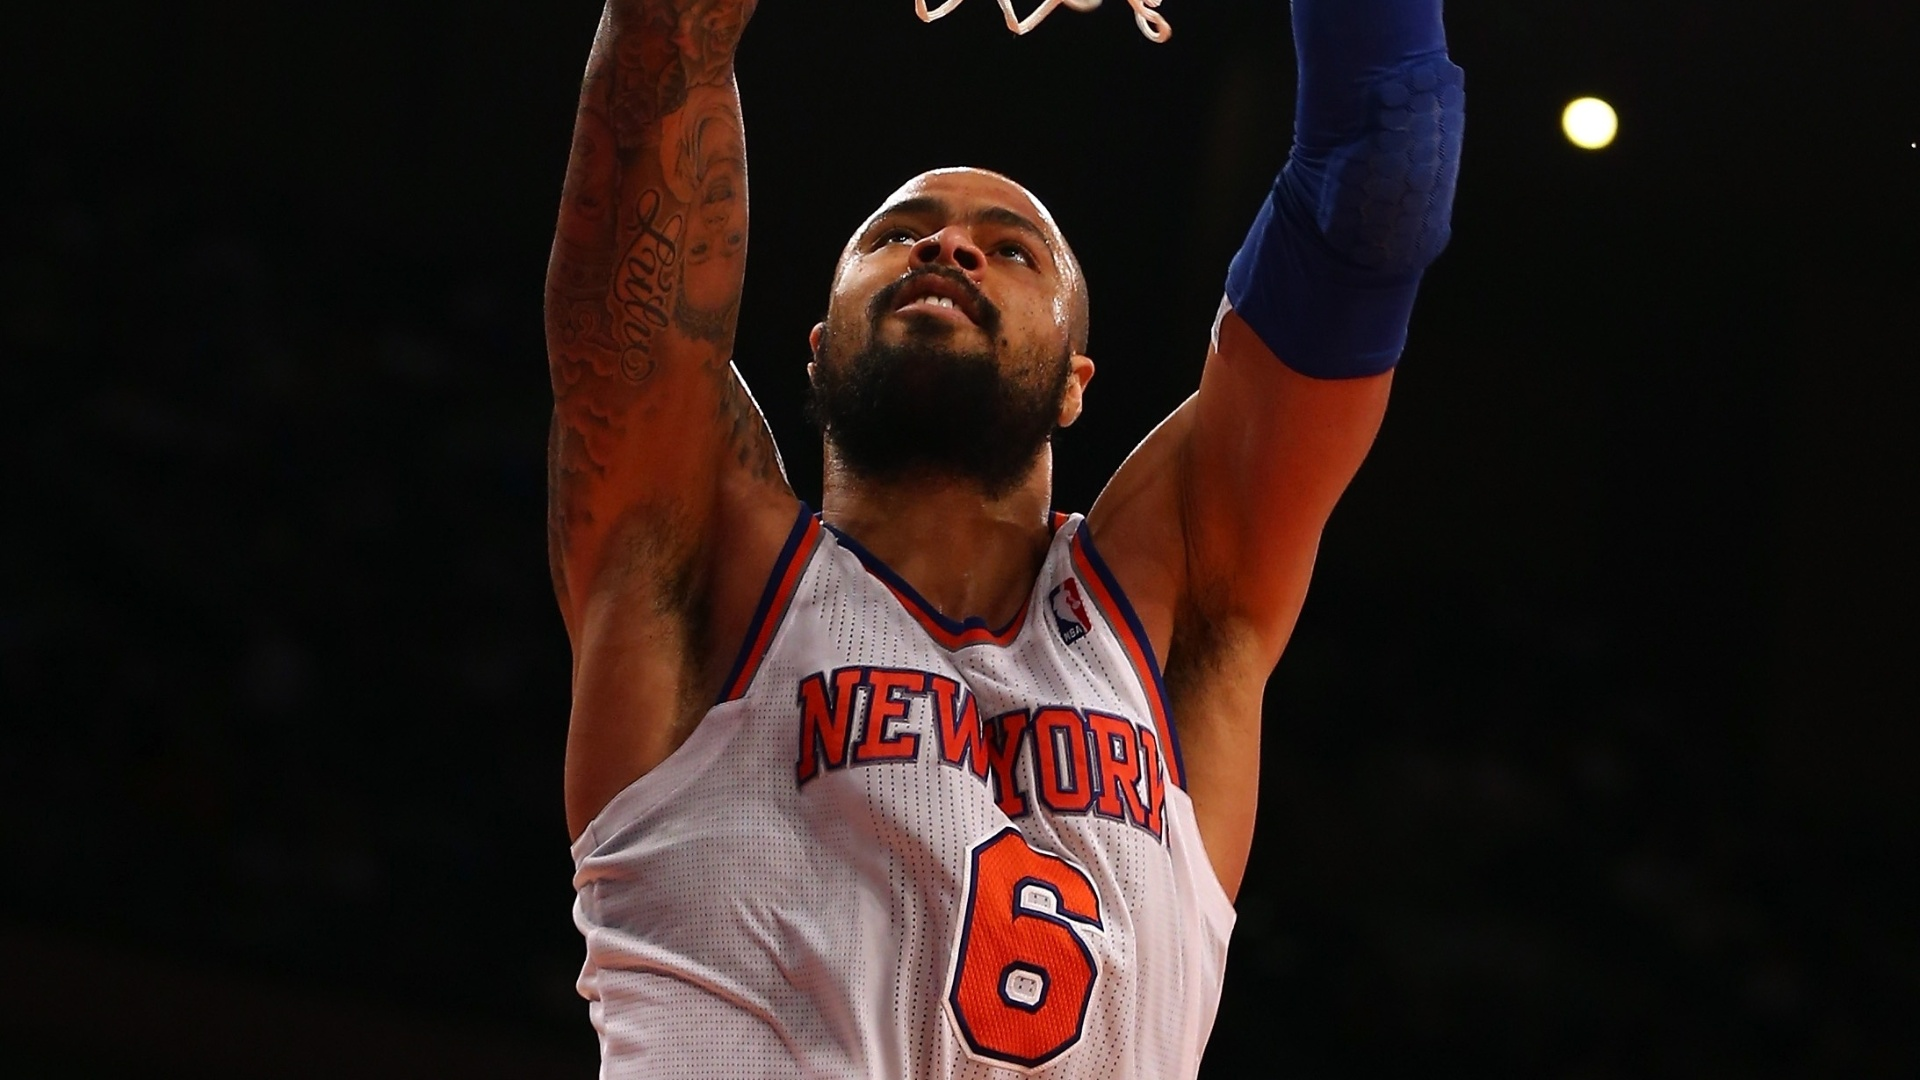 30.jan.2013 - Tyson Chandler enterra no triunfo de seu Knicks sobre o Orlando Magic